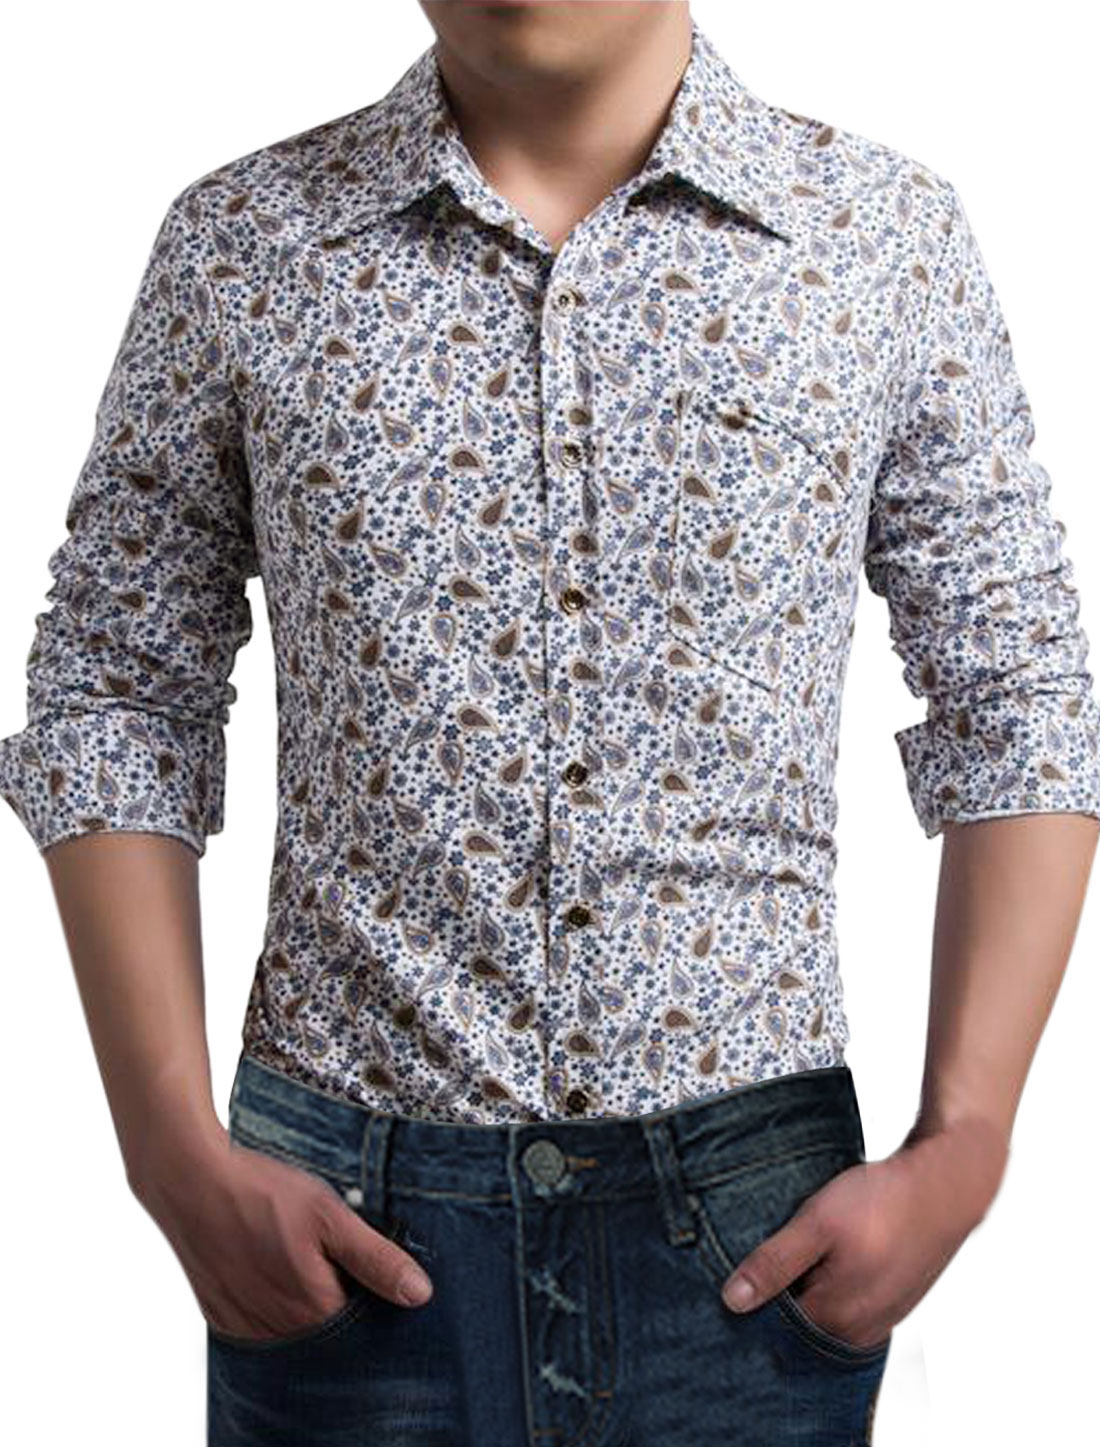 Men Point Collar Long Sleeves Paisley Shirts Blue White S